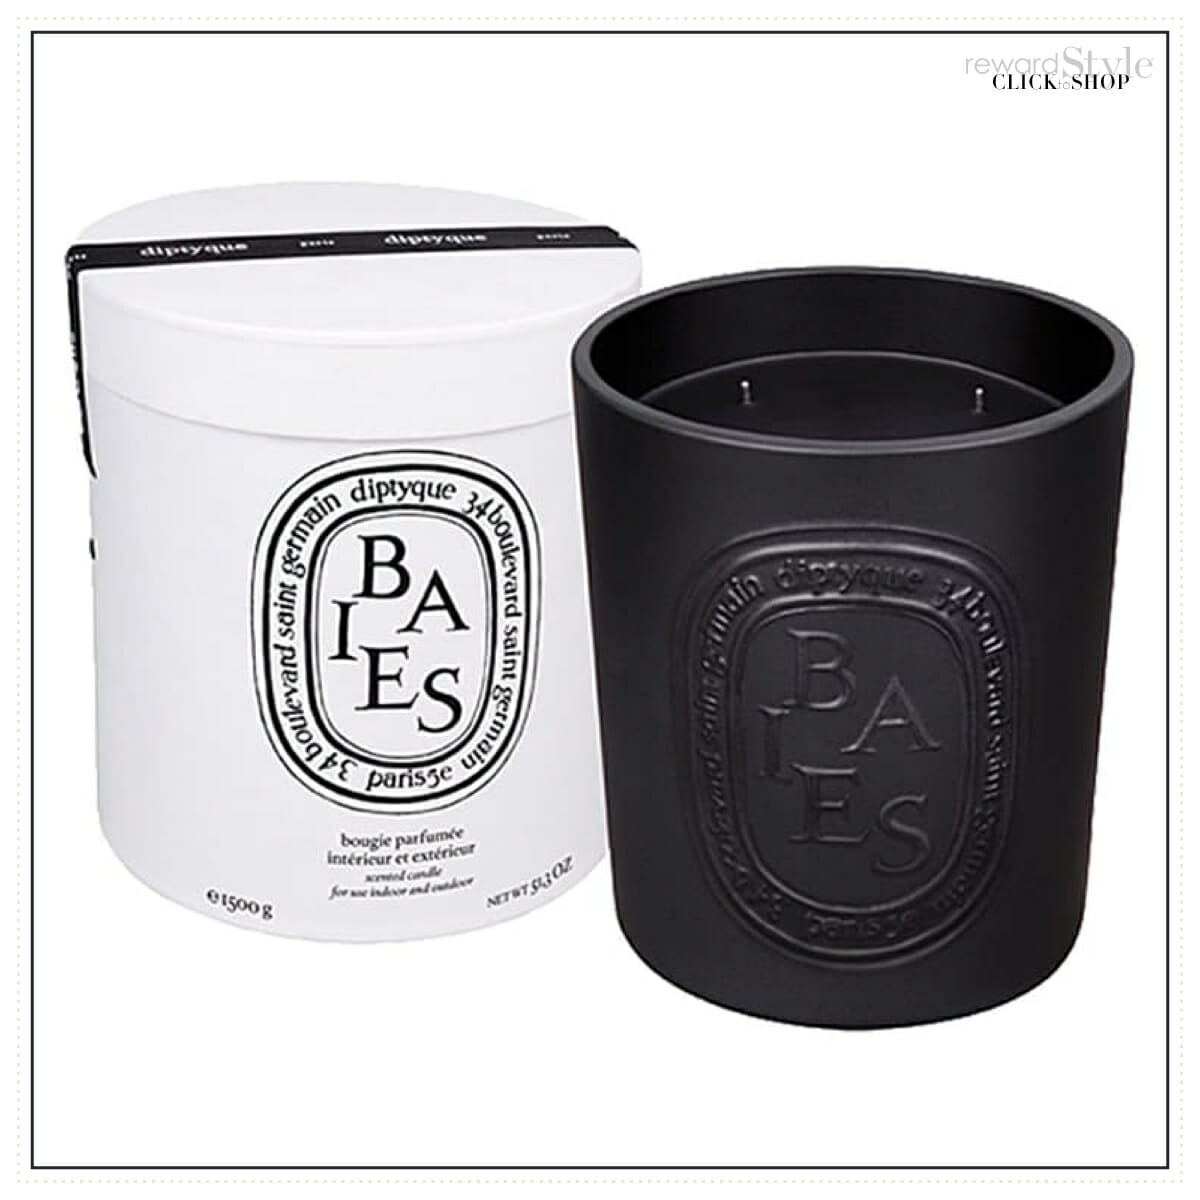 Diptyque luxury home fragrance